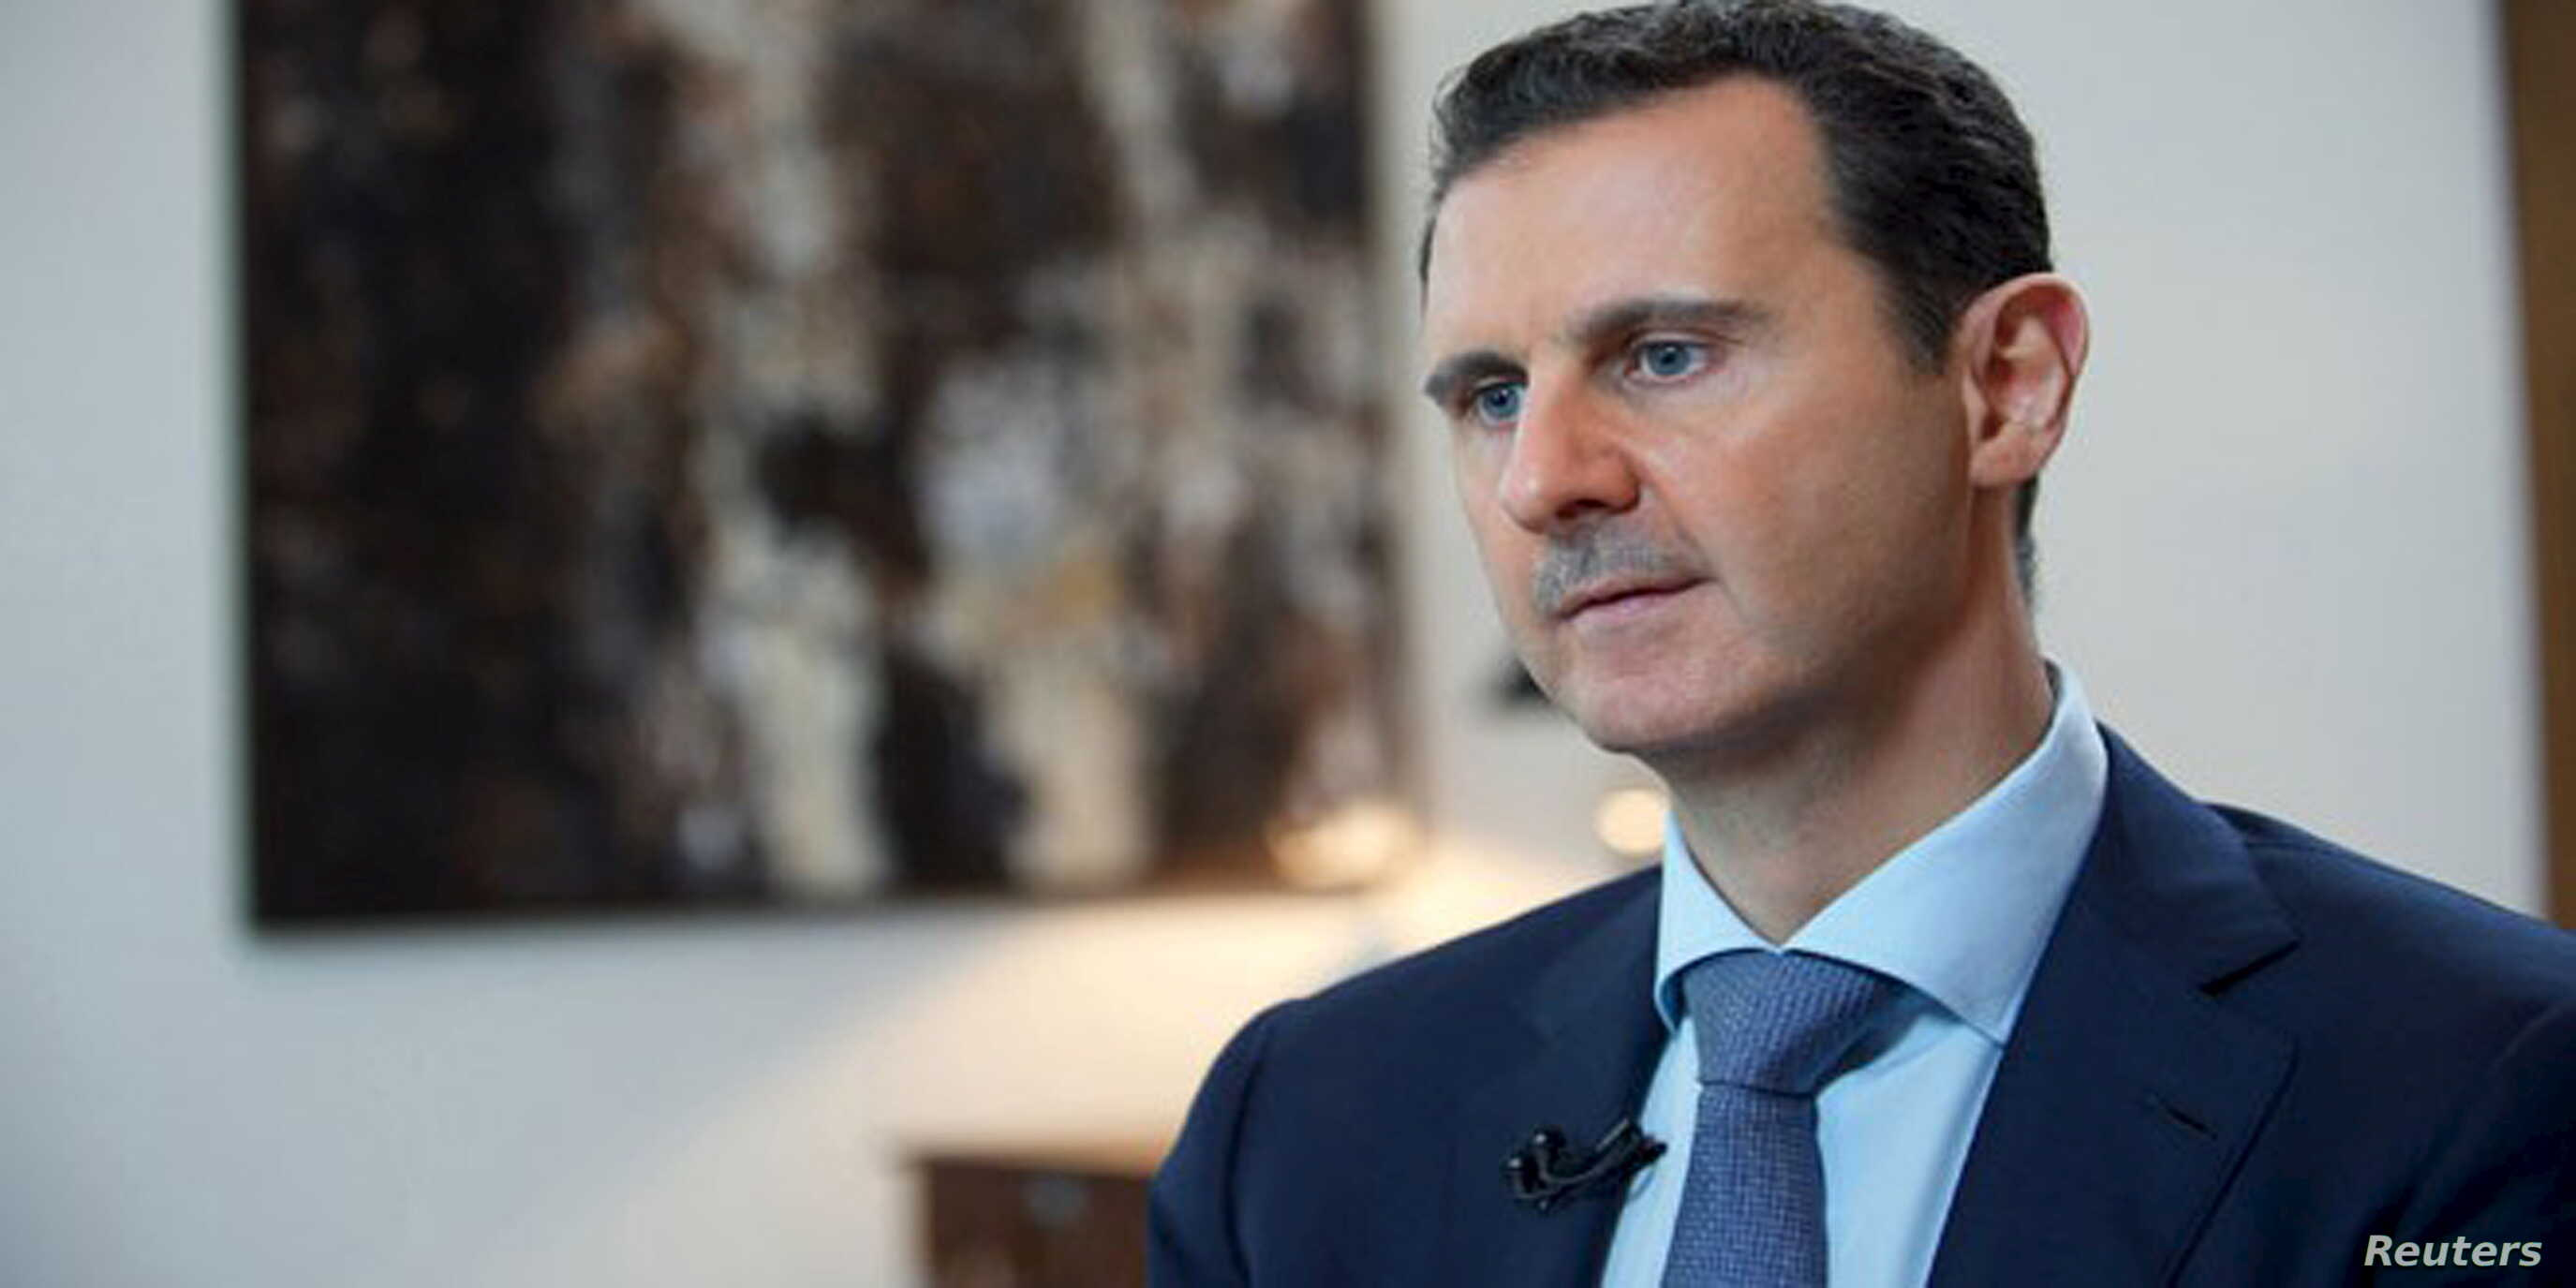 Syria's President Bashar al-Assad speaks during an interview with the Iranian Khabar TV channel in this handout photograph released by Syria's national news agency SANA, Oct. 4, 2015.